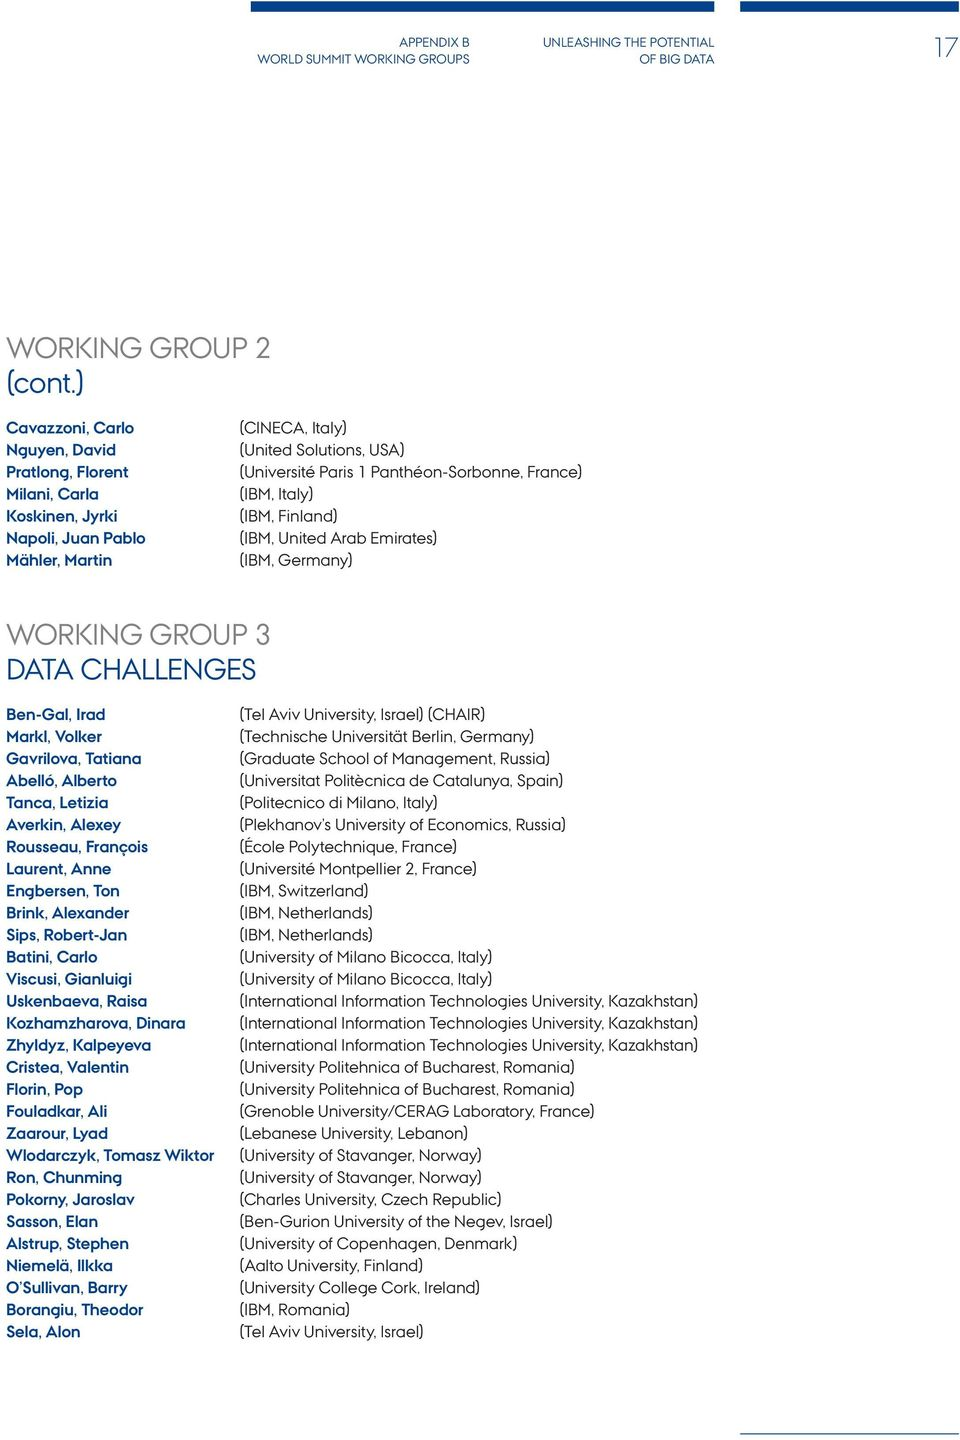 France) (IBM, Italy) (IBM, Finland) (IBM, United Arab Emirates) (IBM, Germany) WORKING GROUP 3 DATA CHALLENGES Ben-Gal, Irad Markl, Volker Gavrilova, Tatiana Abelló, Alberto Tanca, Letizia Averkin,